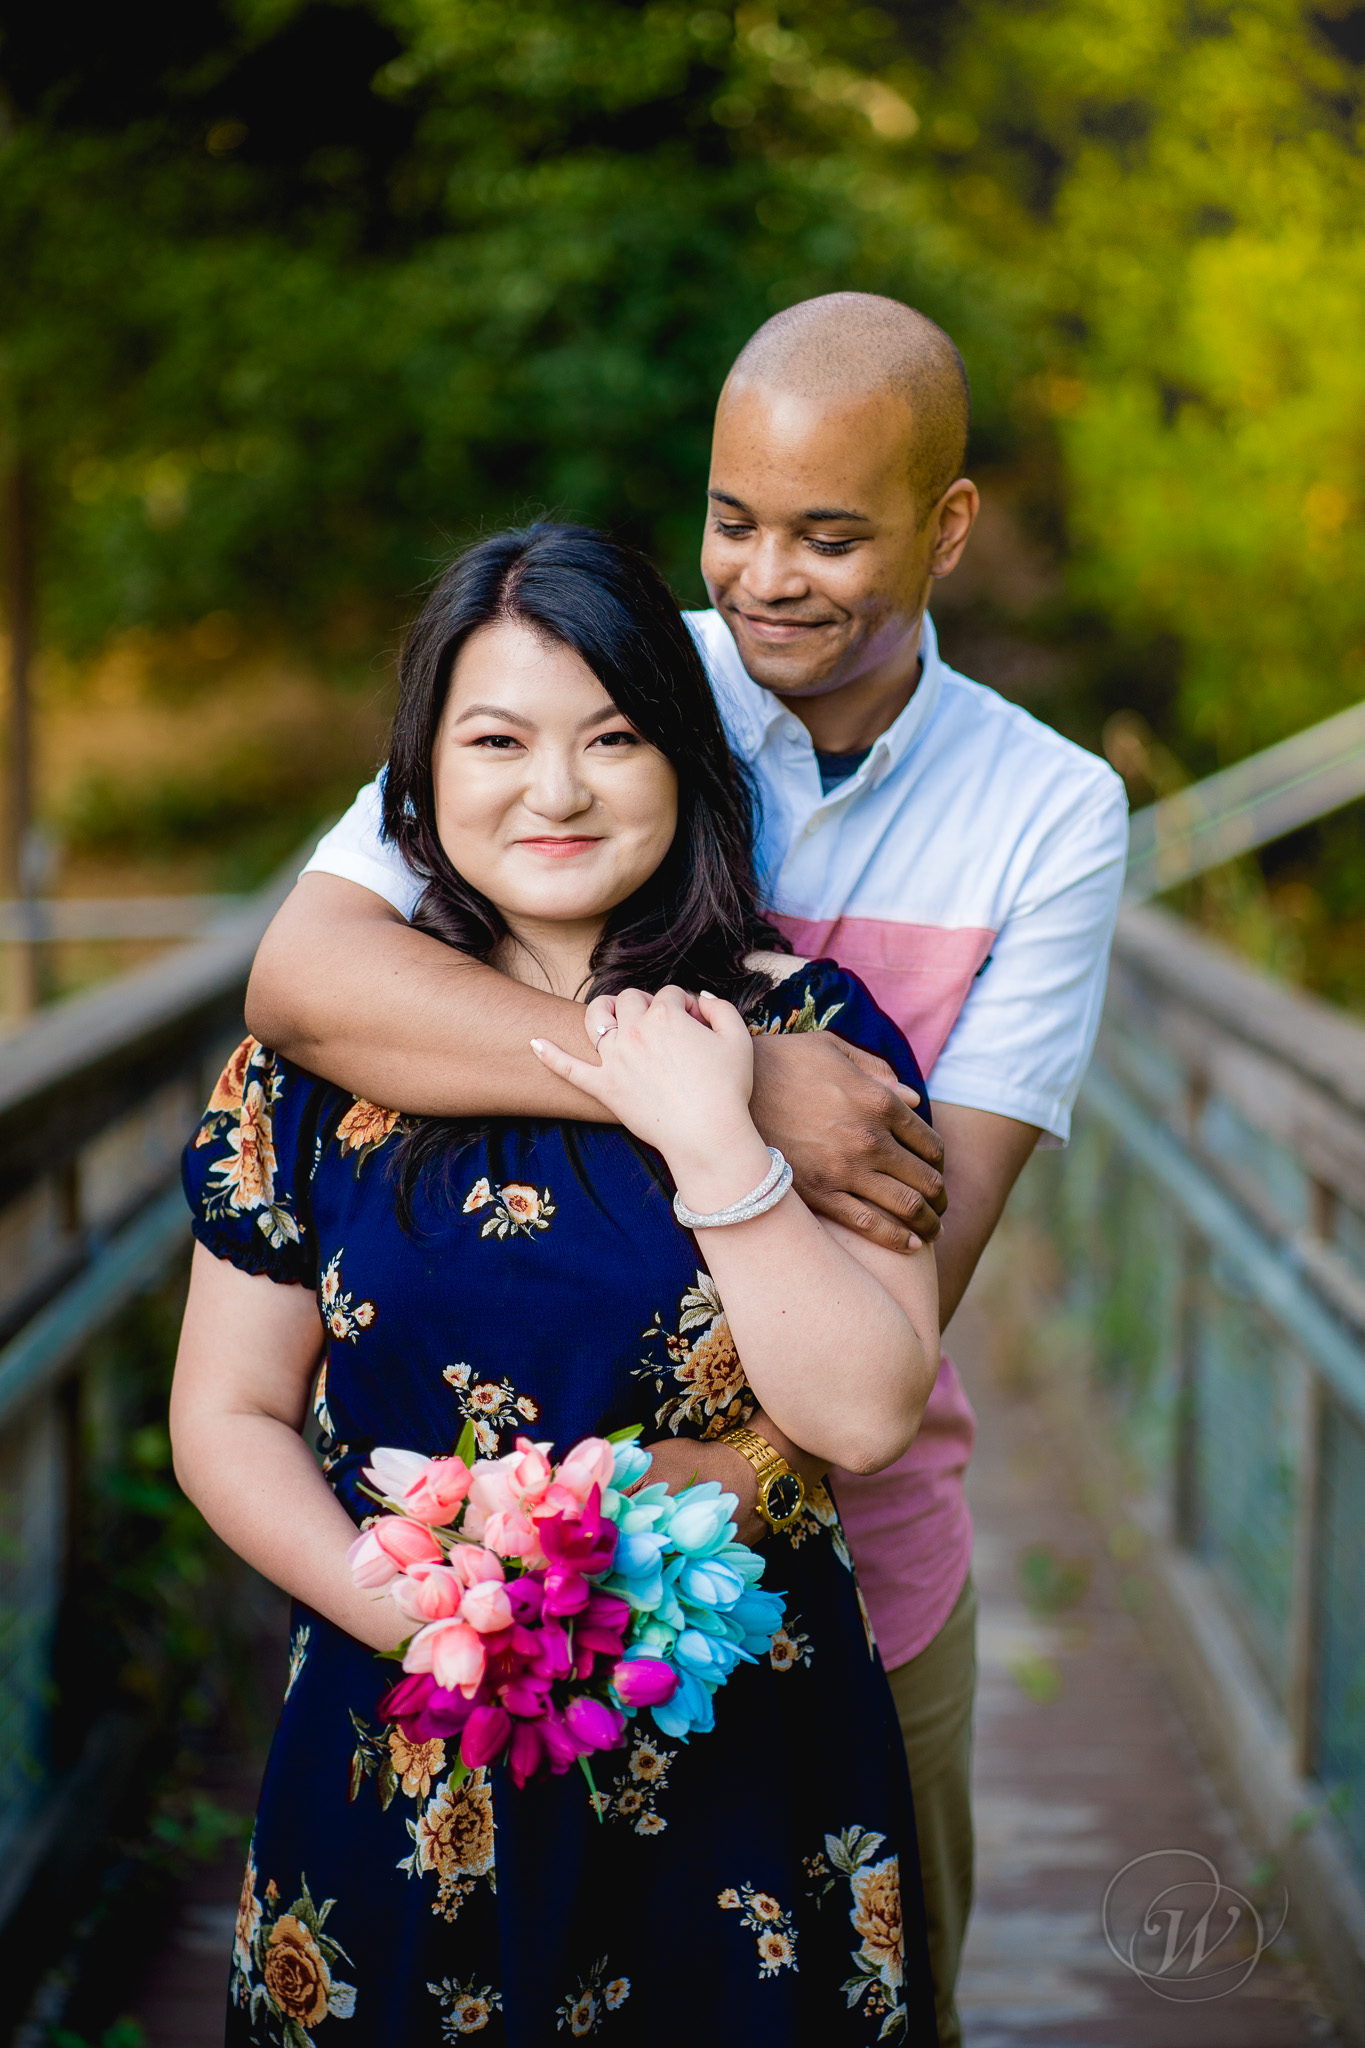 2019.06.16_Mosara-Brandon_Engagement_41.jpg